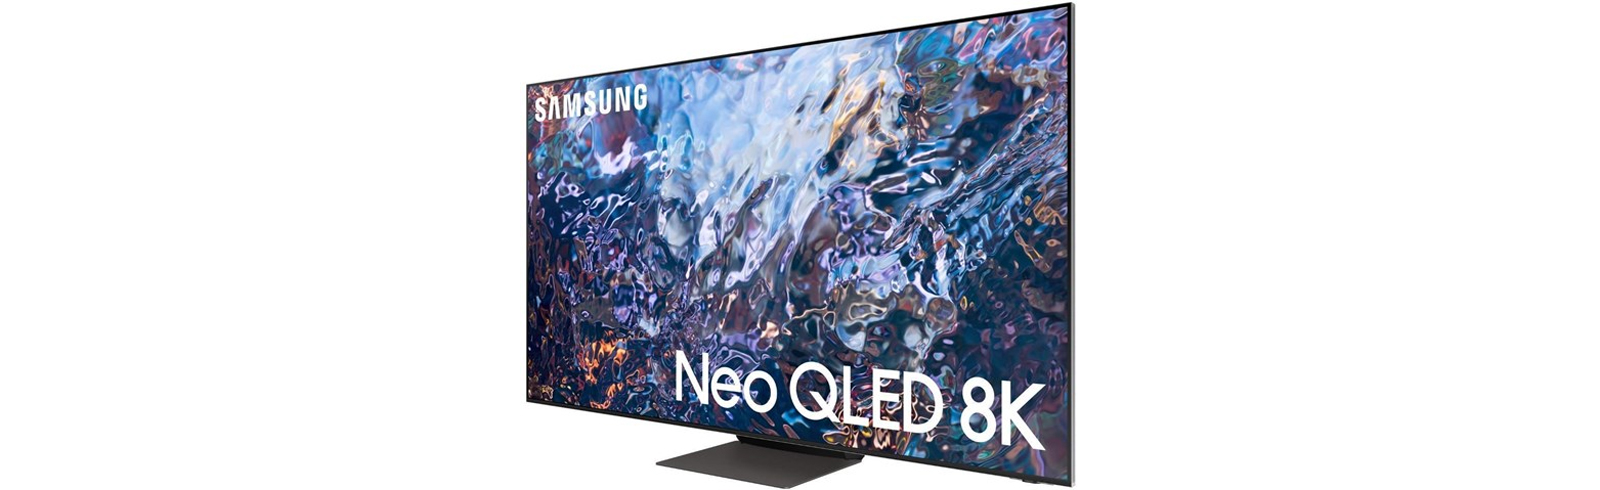 Samsung QN700A series of Neo QLED 8K TVs - specifications and features